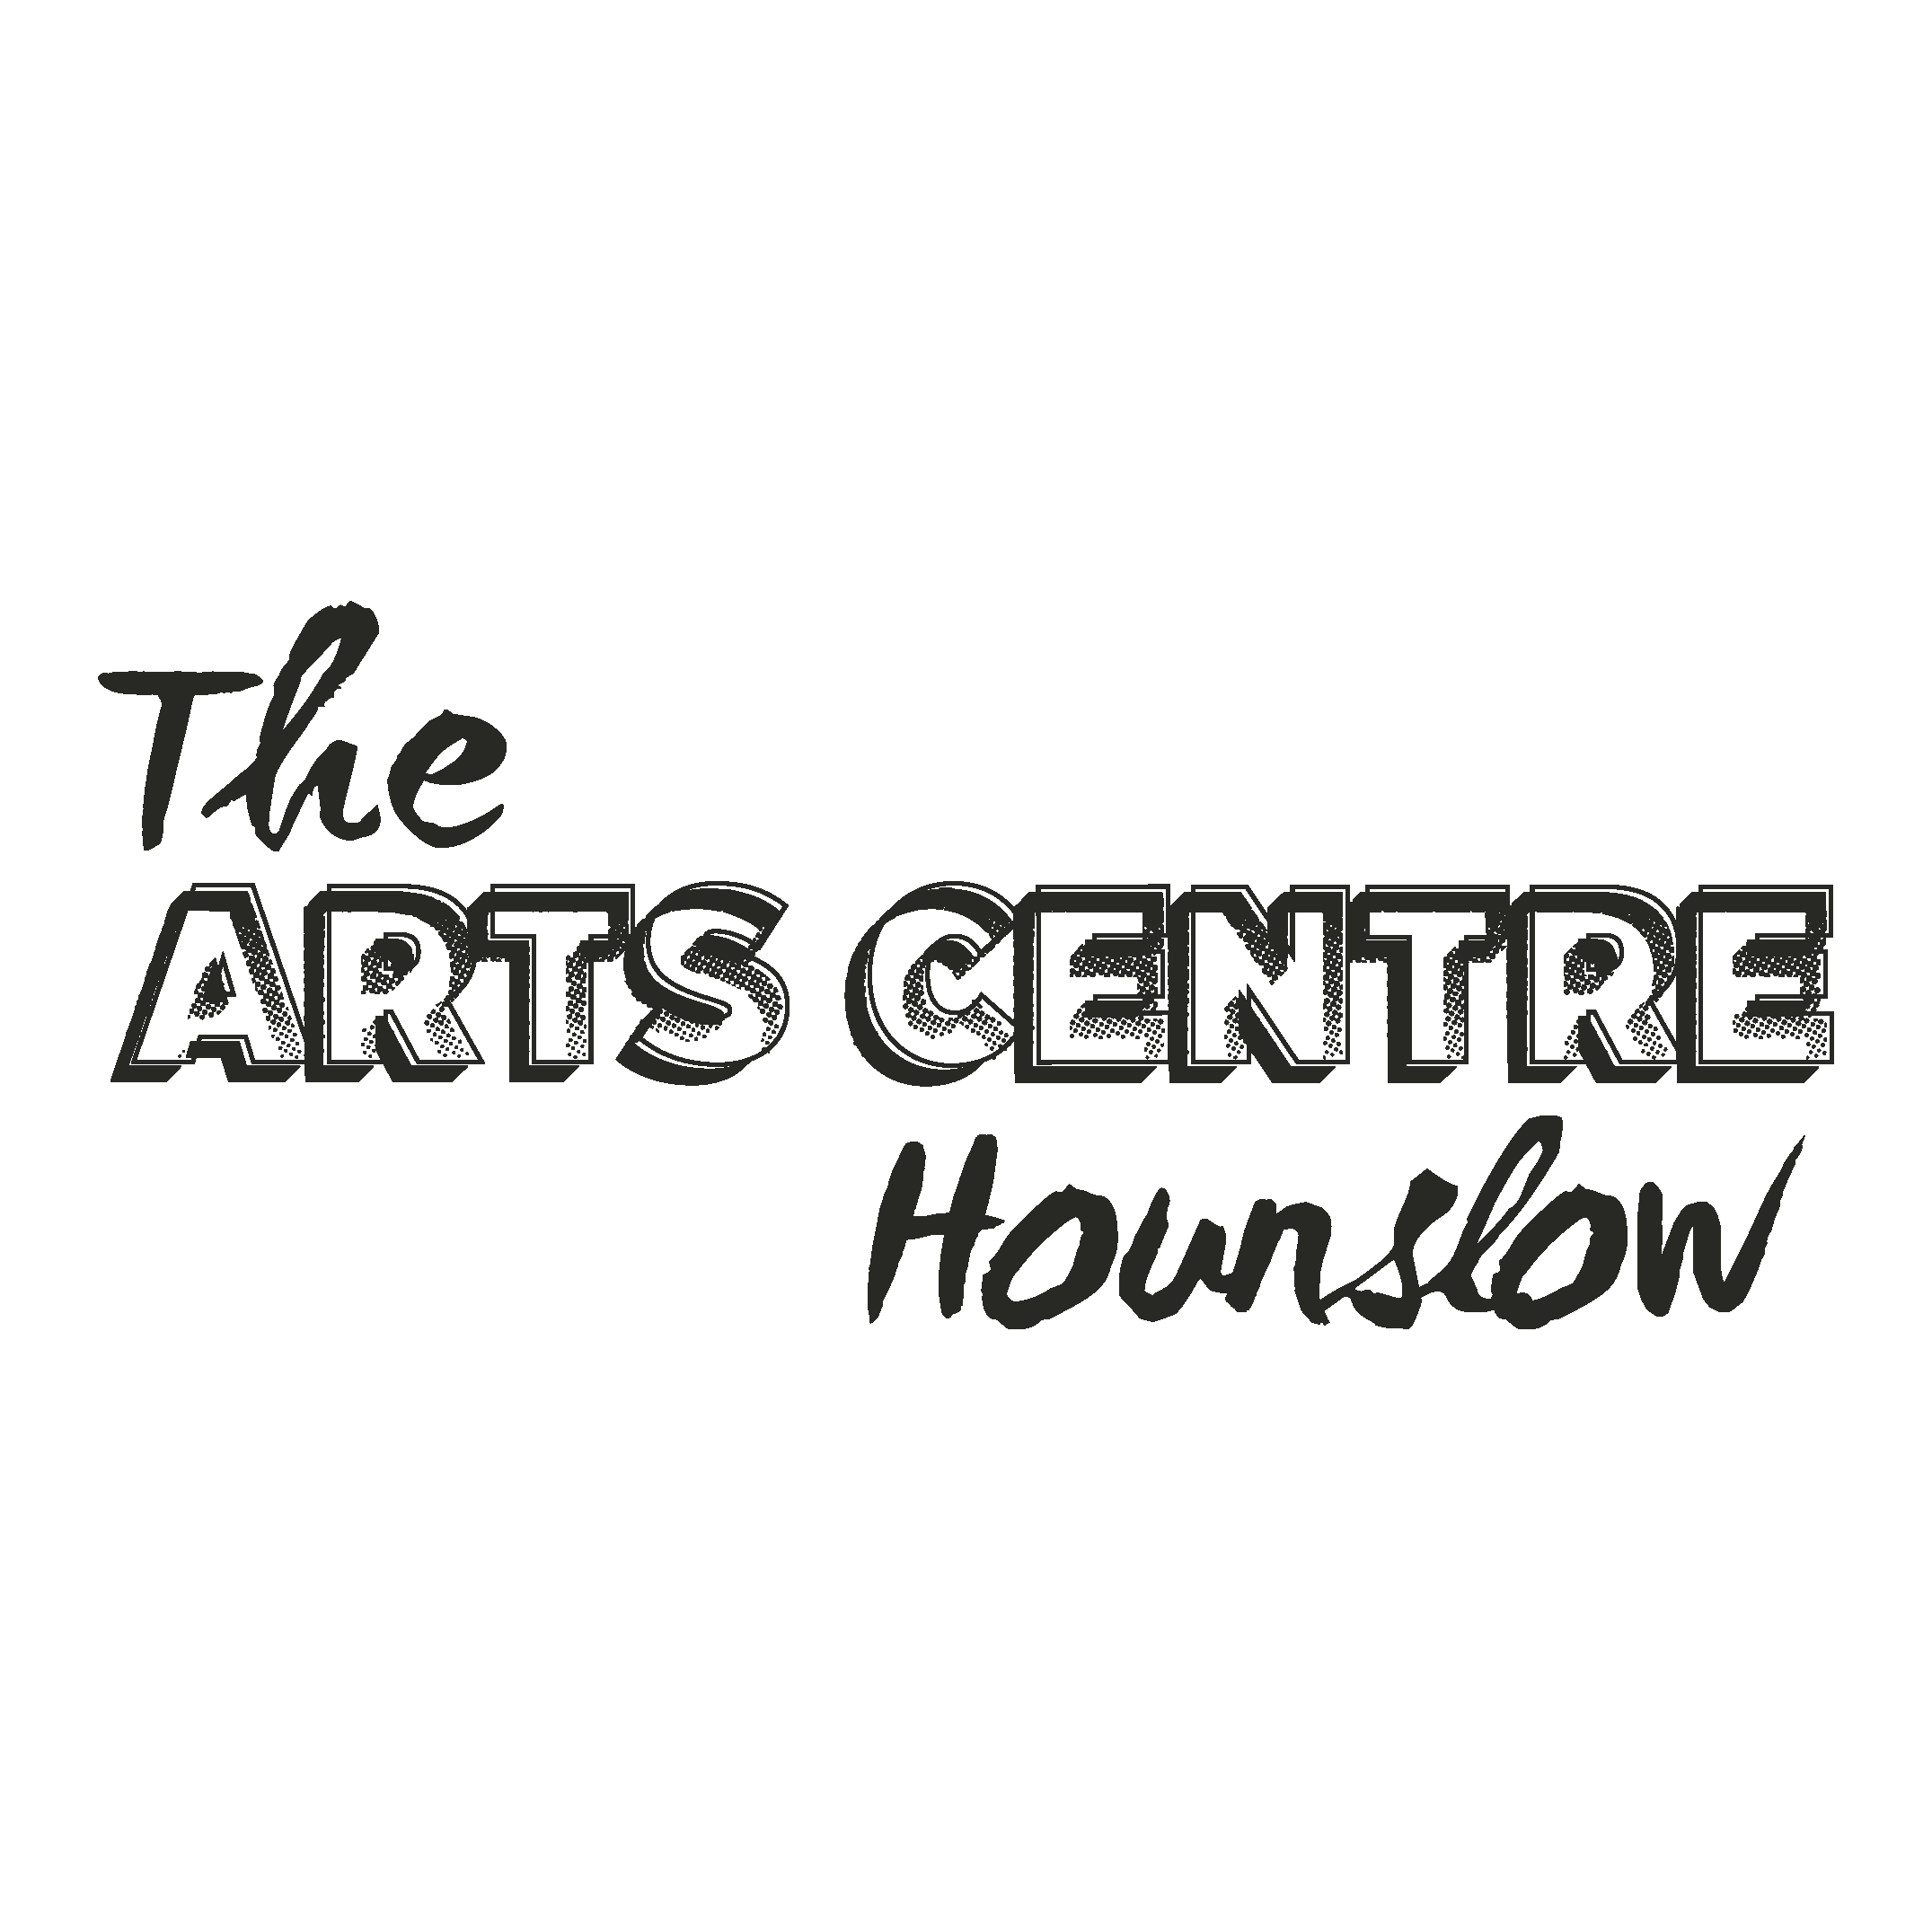 The arts centre Hounslow logo